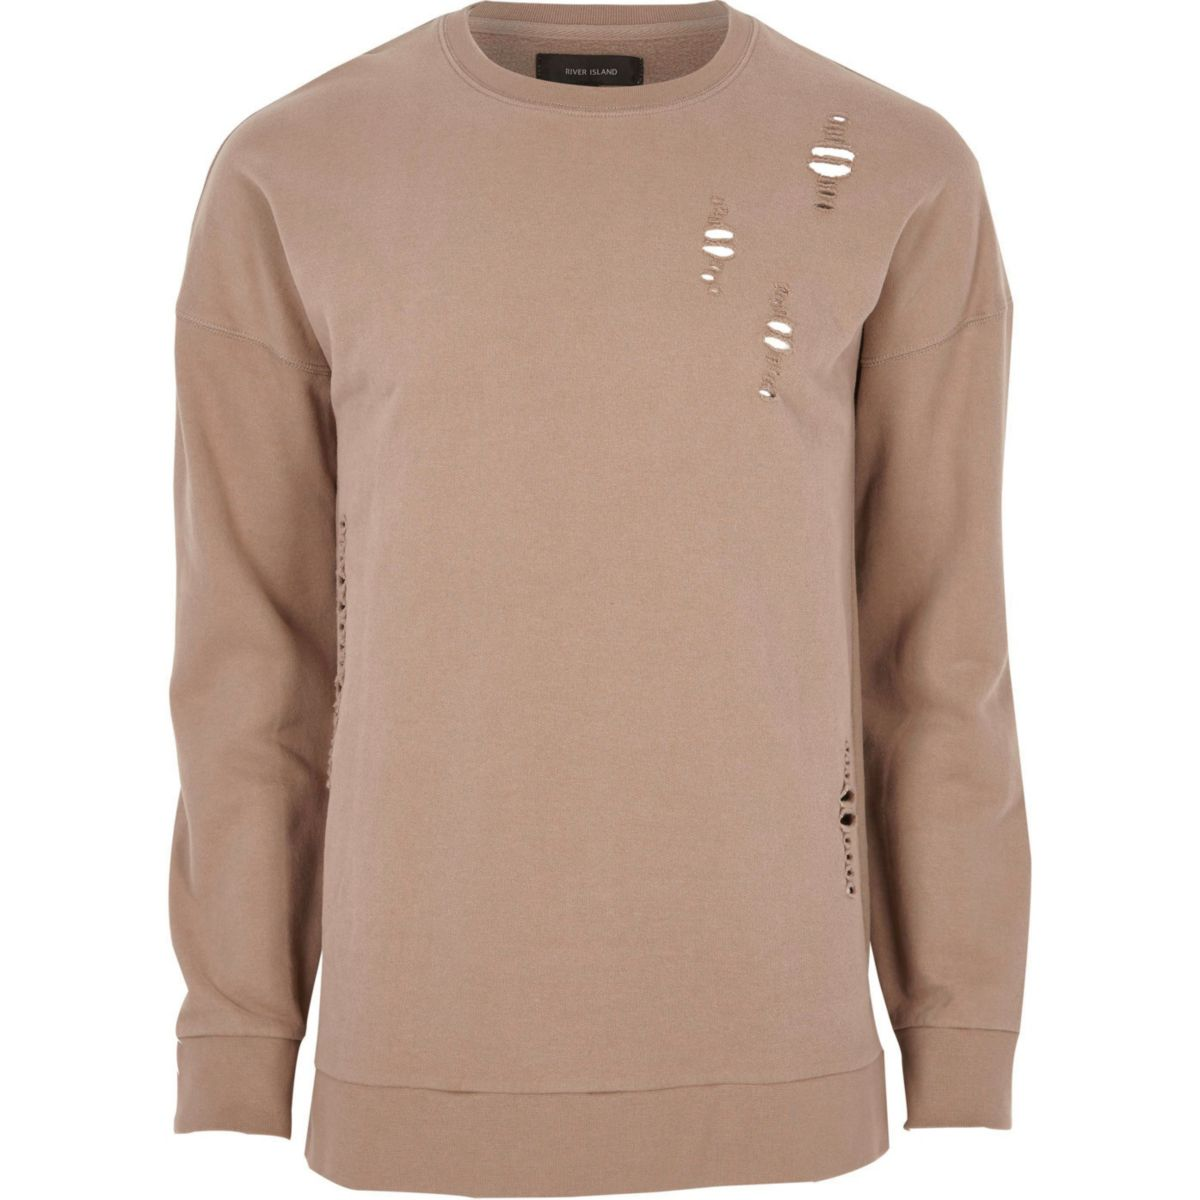 Sweat Big & Tall rose foncé aspect usé